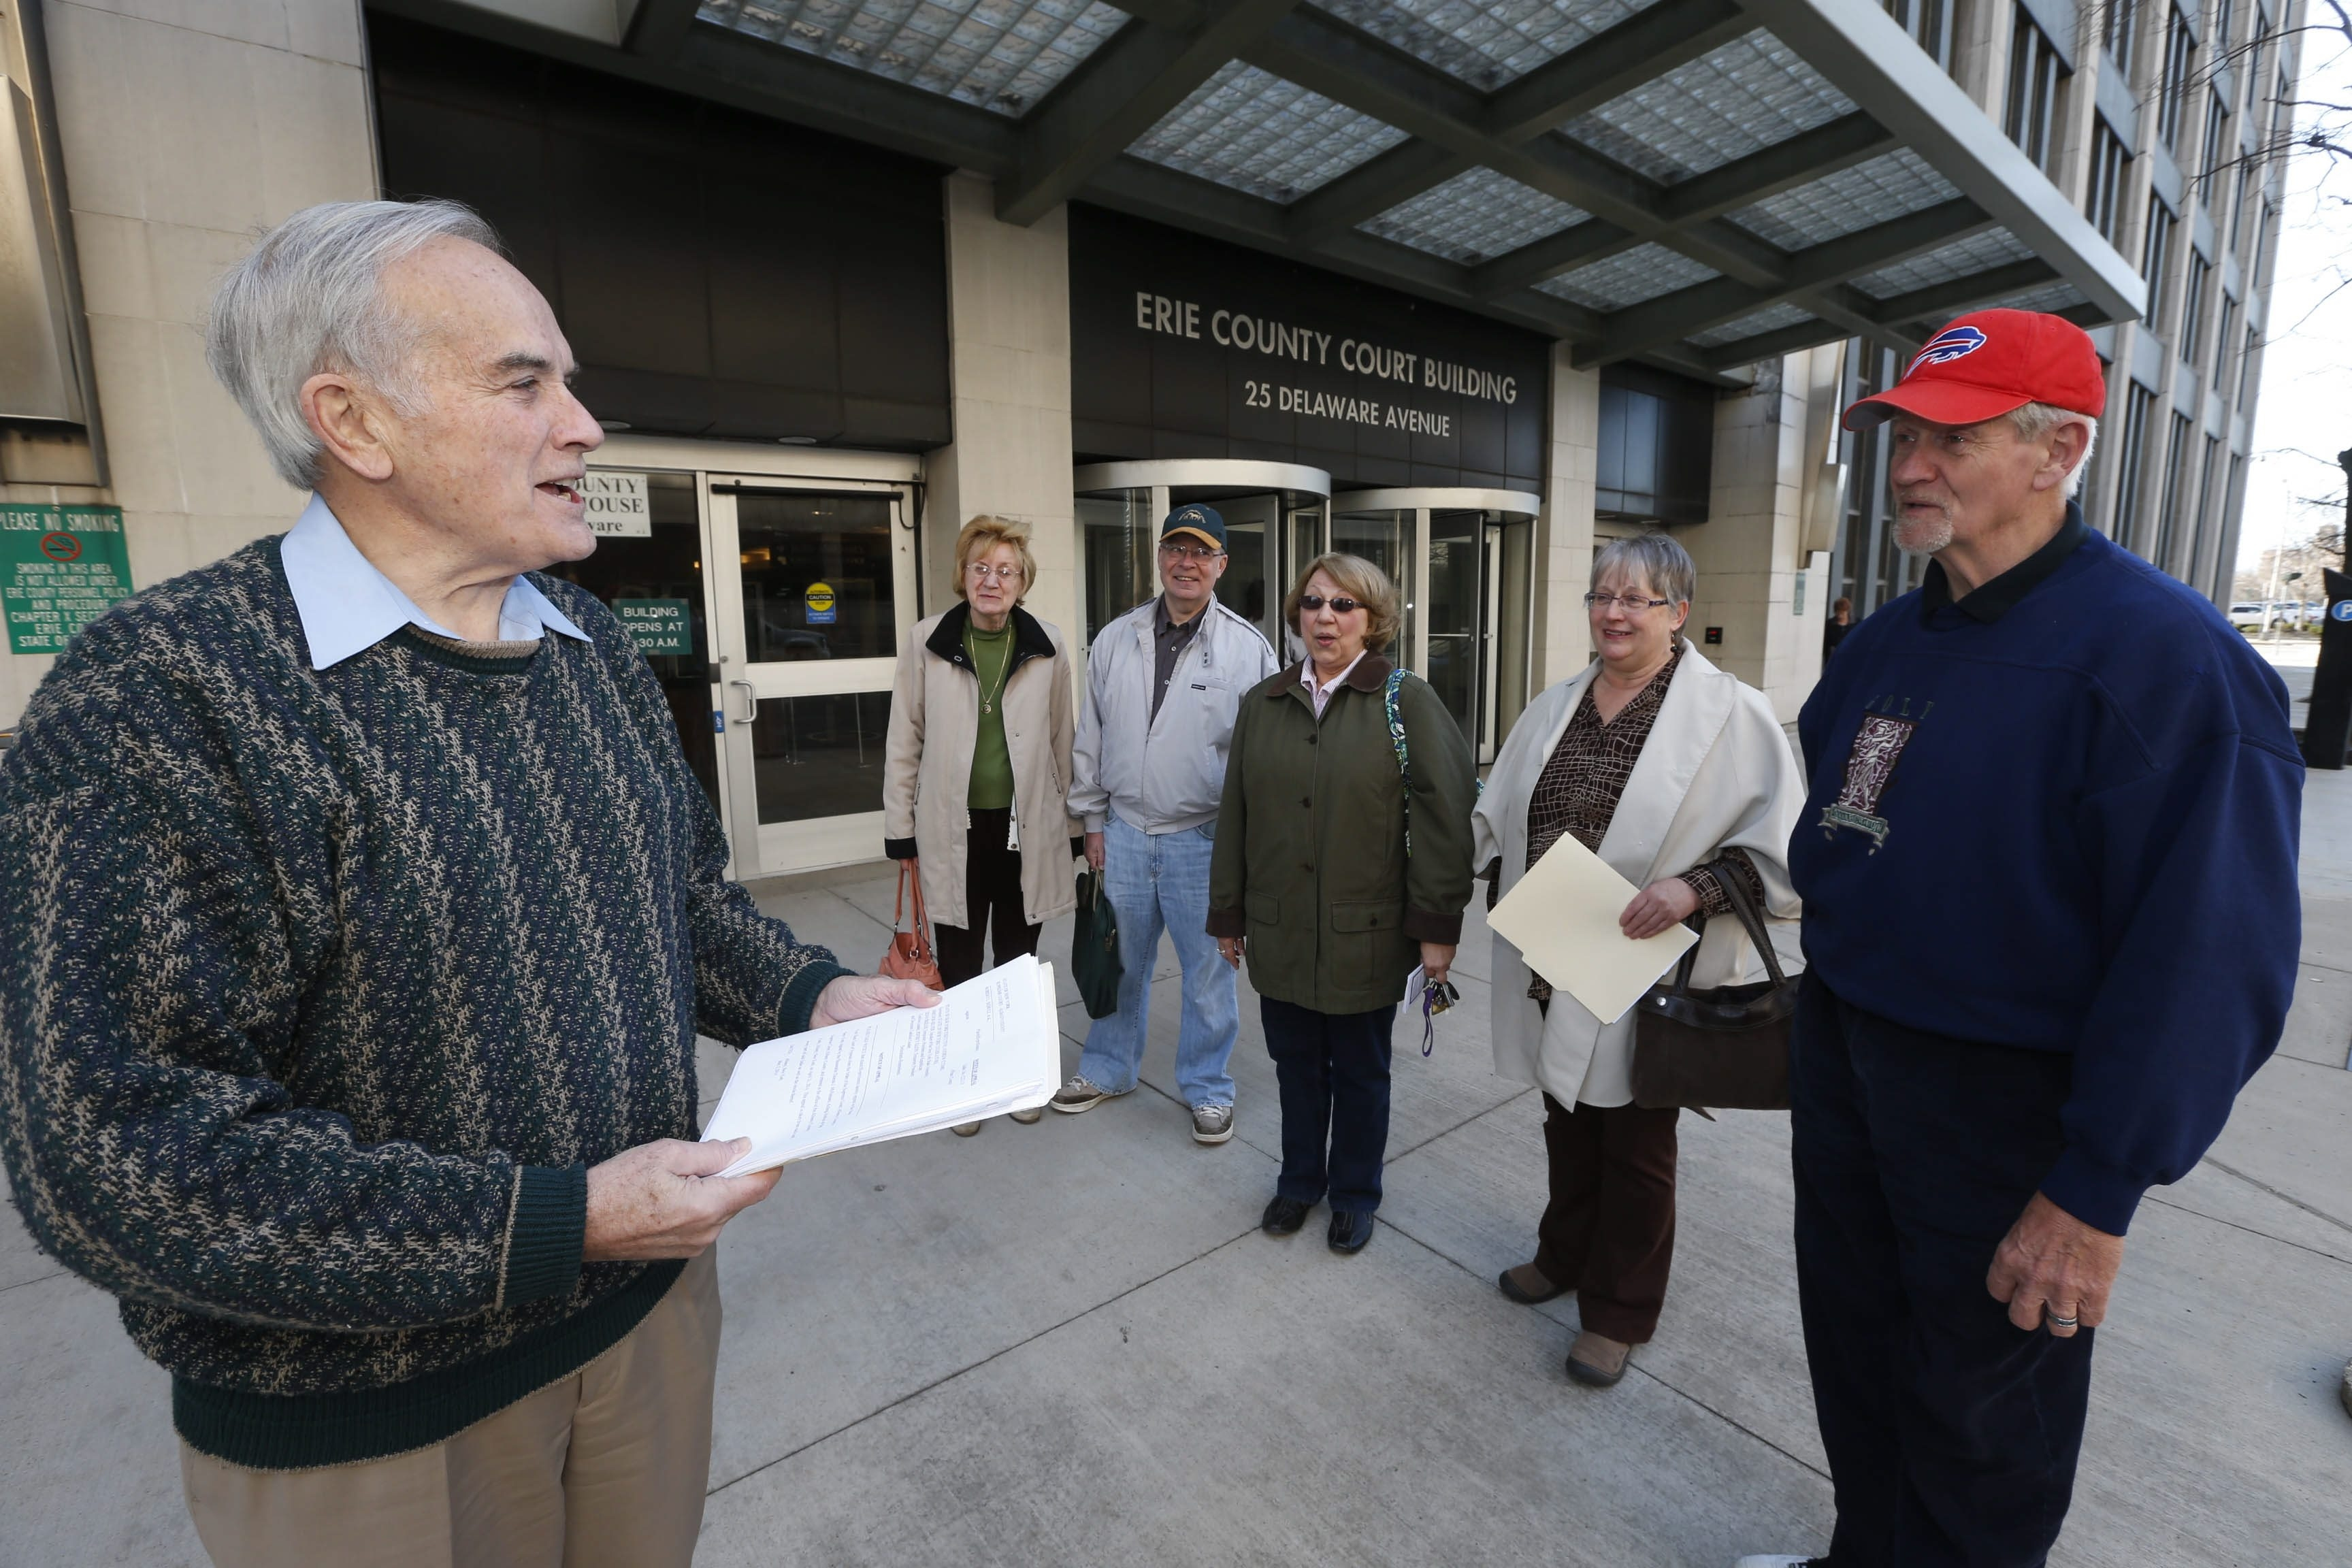 Robert Schulz, left, lead plaintiff in a lawsuit challenging the SAFE Act, speaks Monday with fellow plaintiffs outside the Erie County Courthouse on Delaware Avenue.